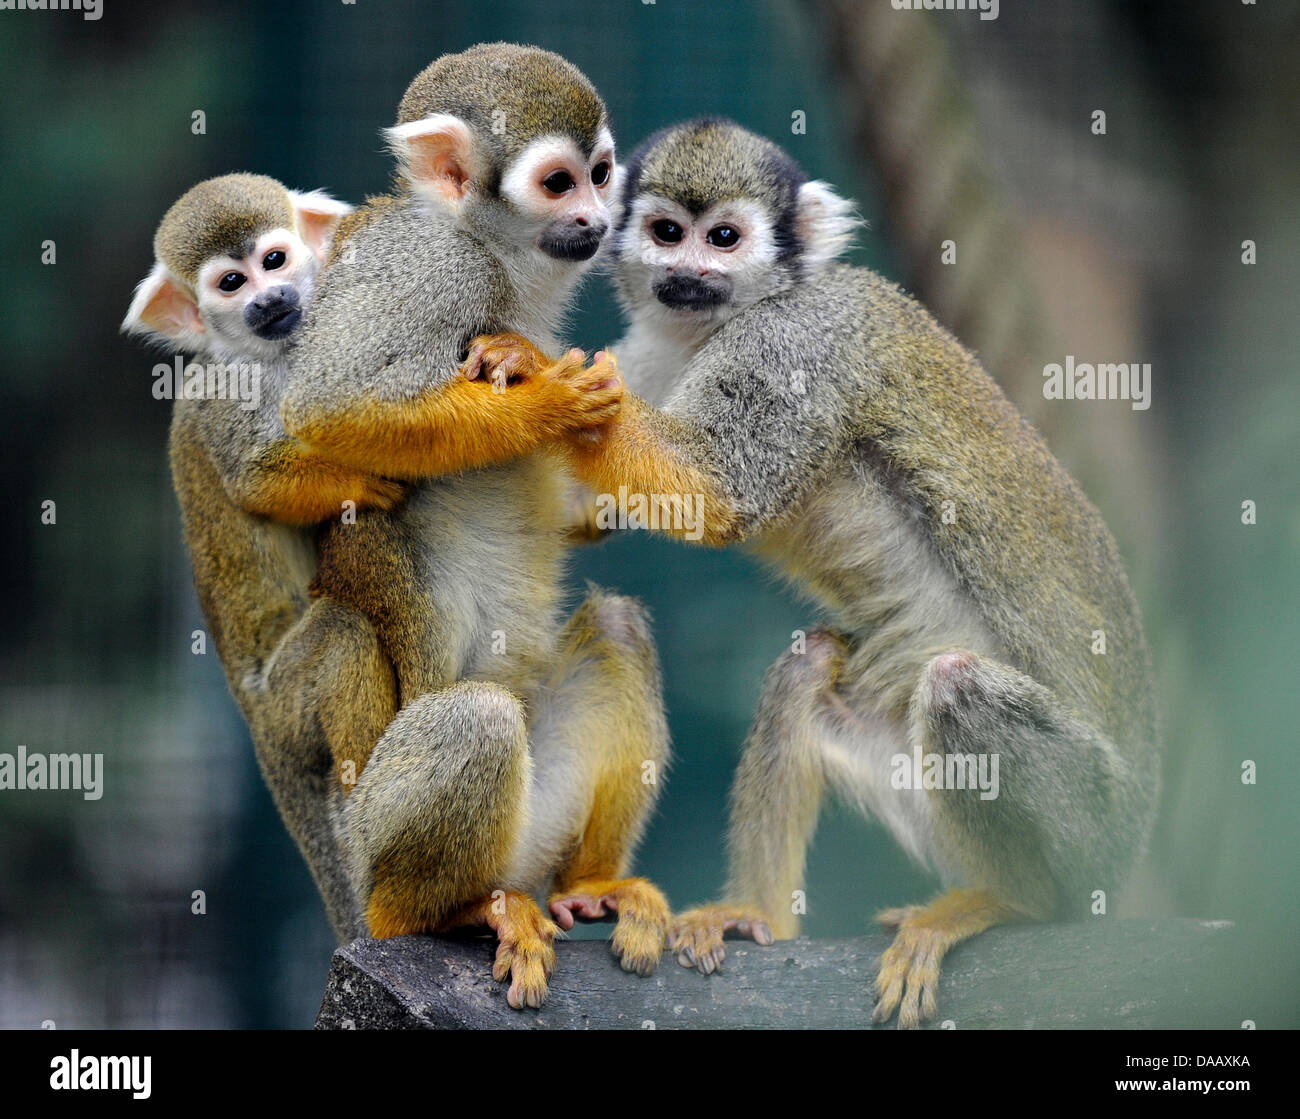 A Family Of Squirrel Monkies With Their Young Climb A Tree At The Zoo Stock Photo Alamy How do you spell the plural form of monkey? https www alamy com stock photo a family of squirrel monkies with their young climb a tree at the 58018110 html